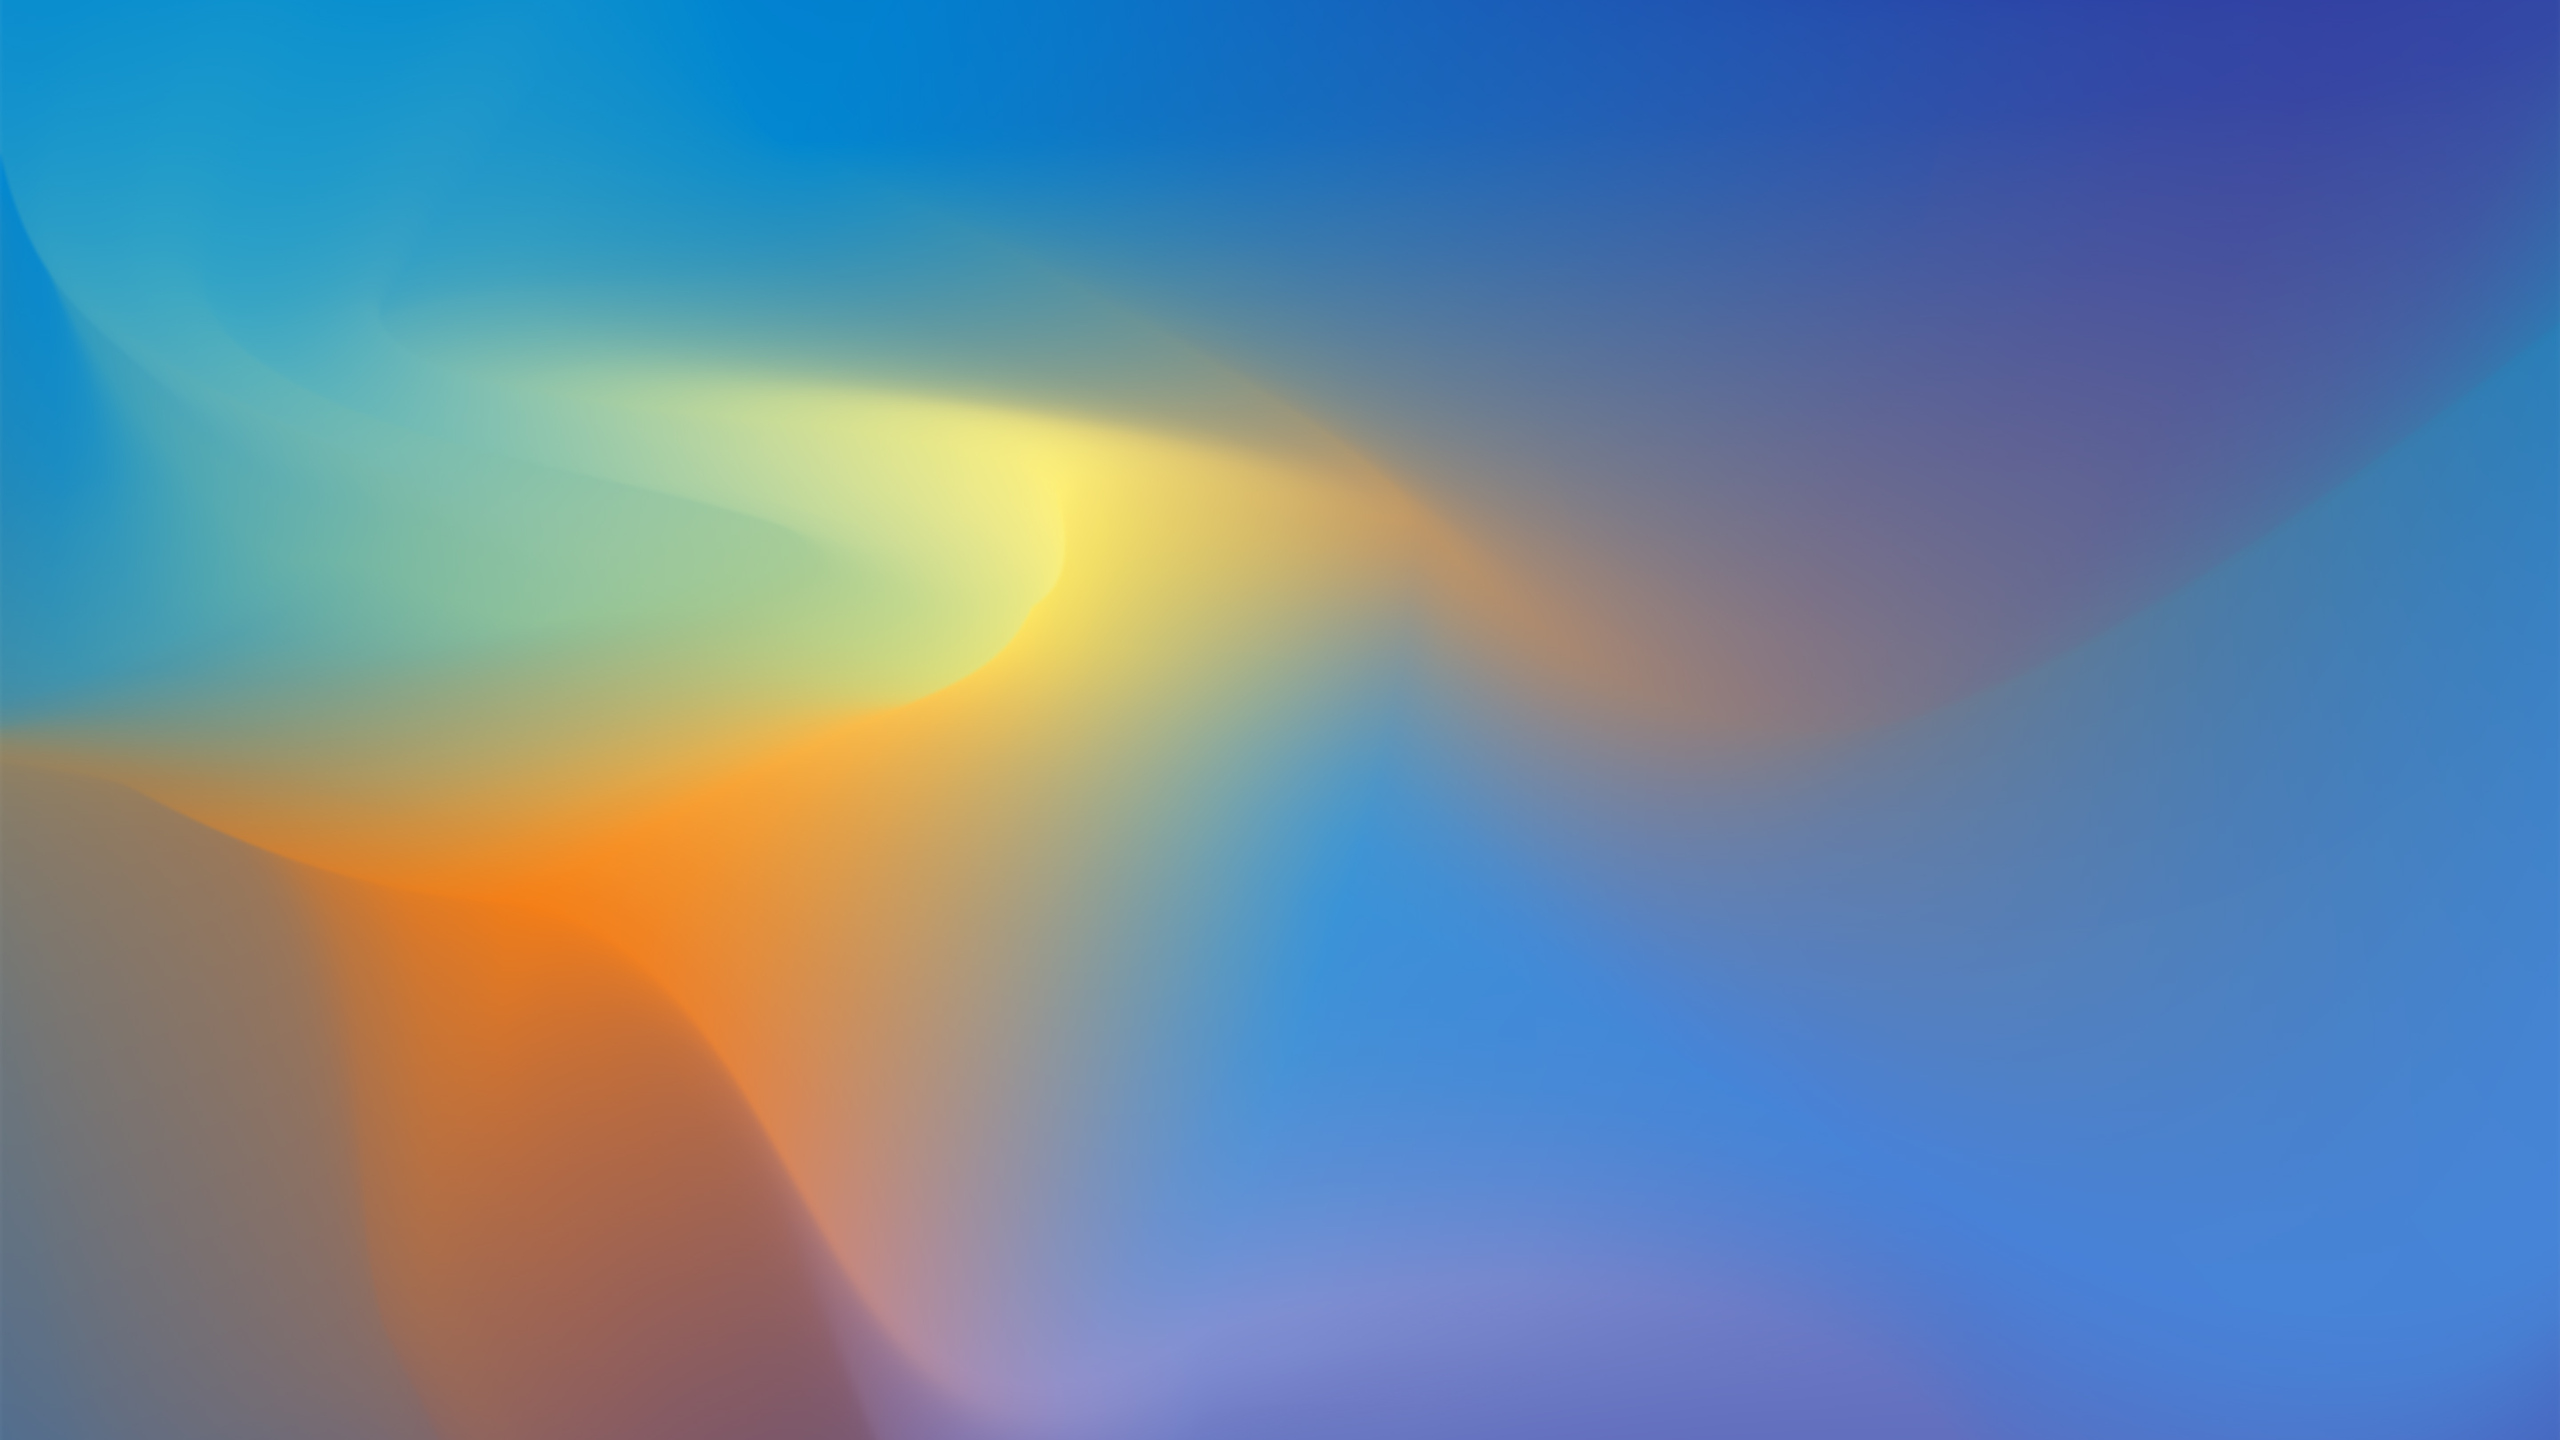 2560x1440 Abstract Blue Gradient 1440p Resolution Hd 4k